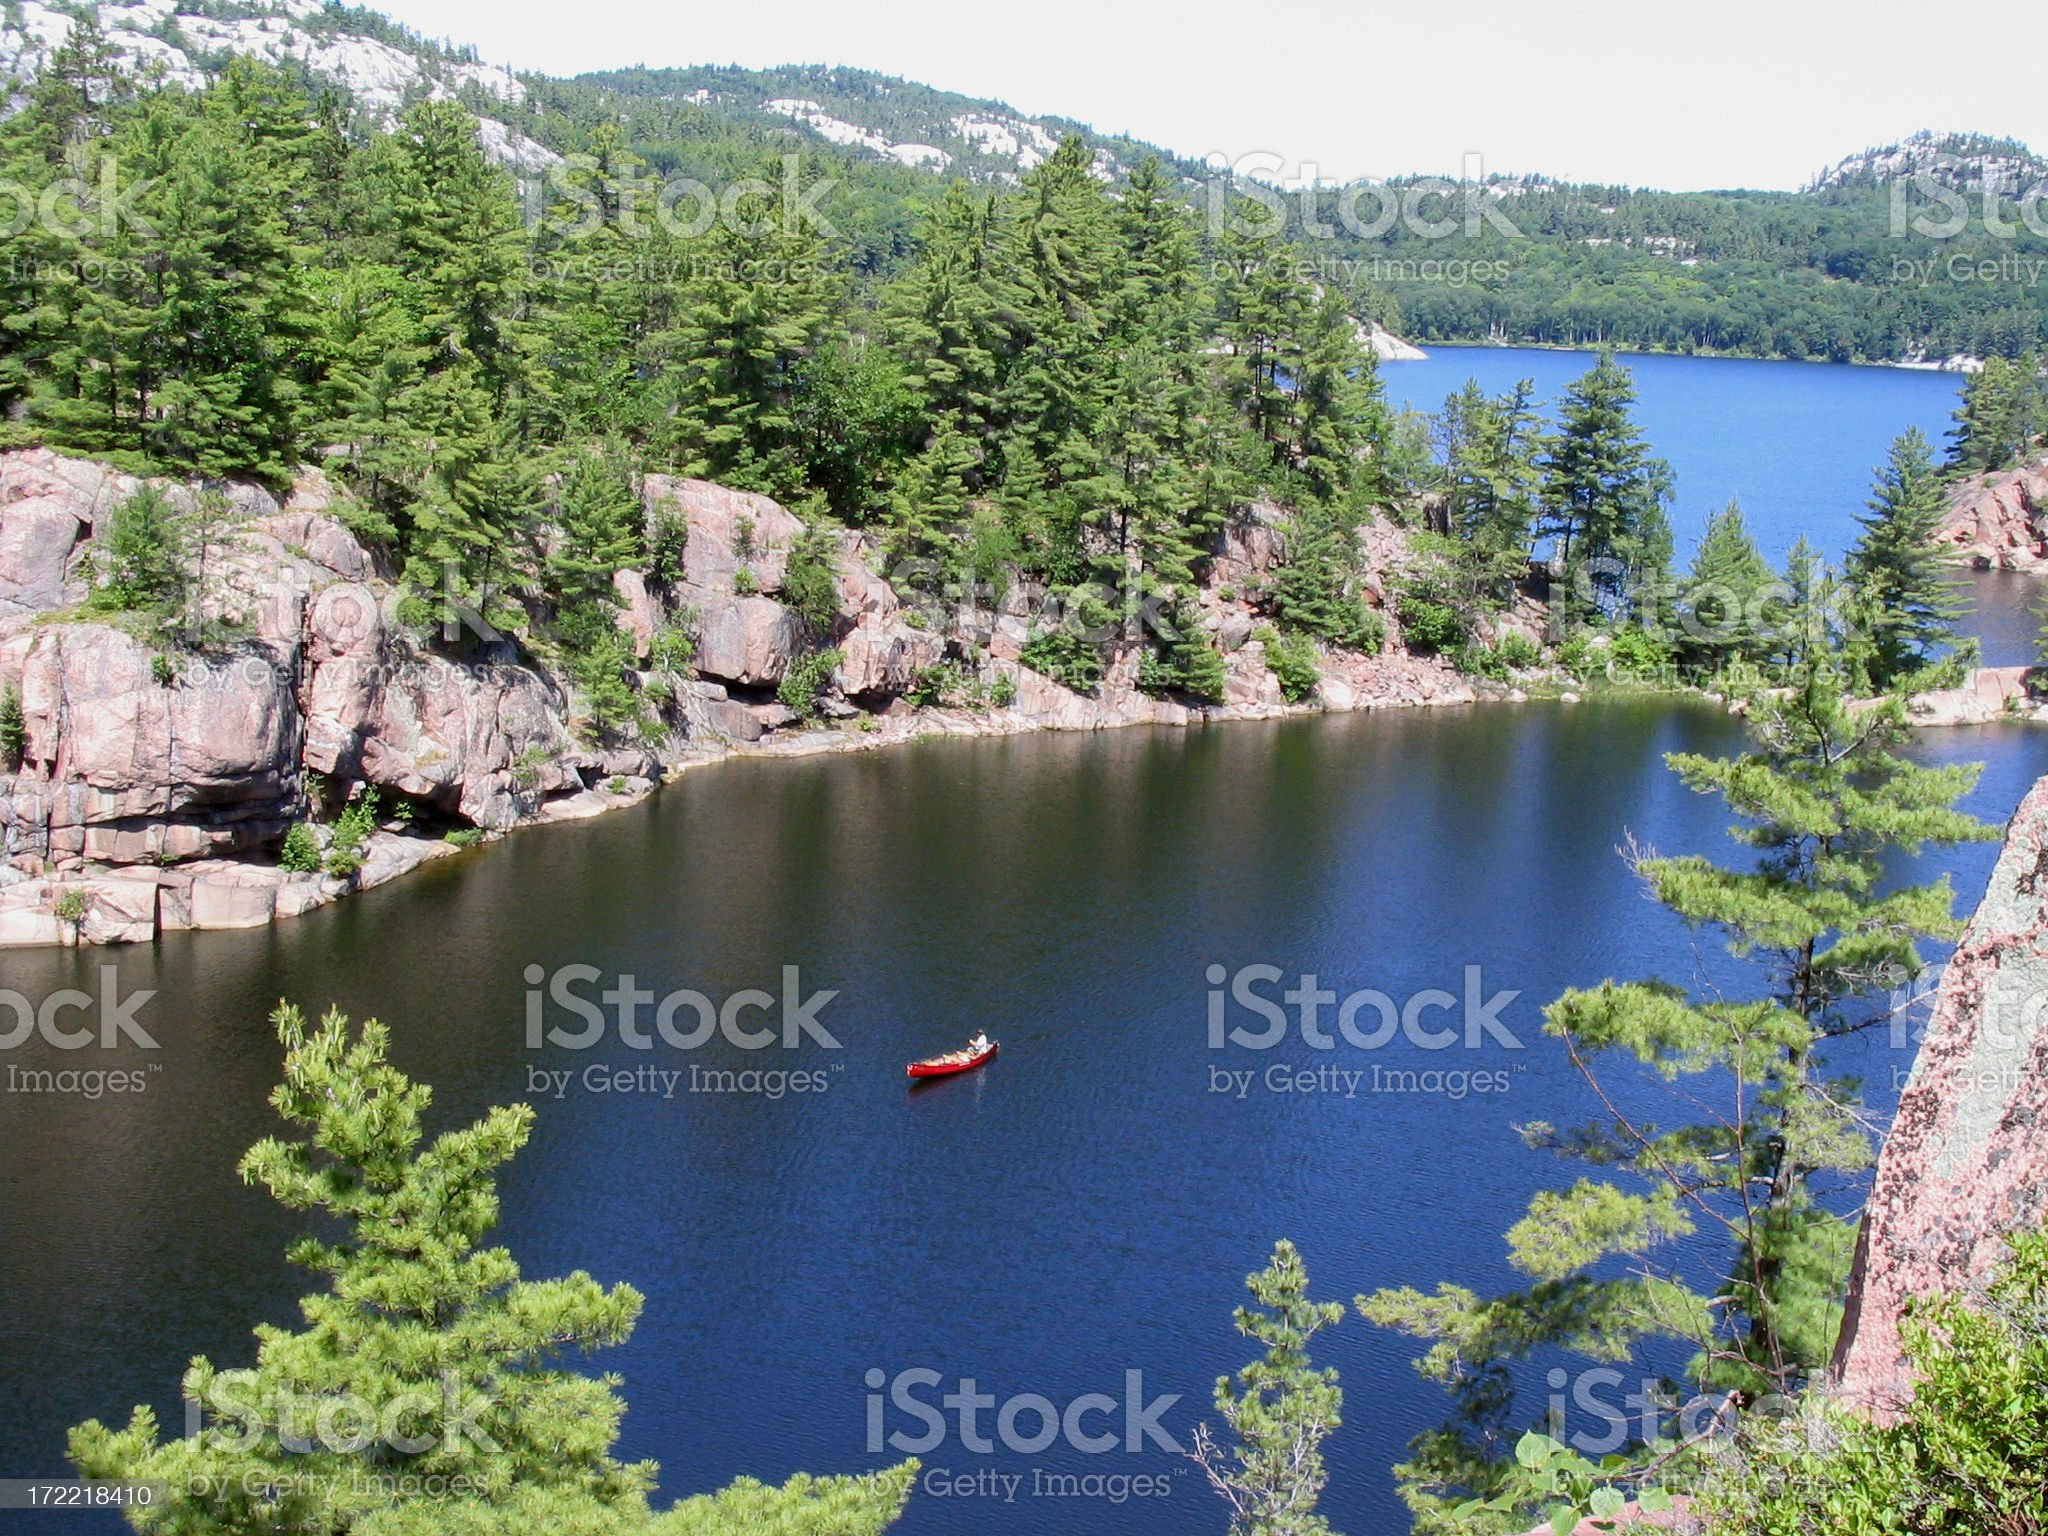 solitude on the lake royalty-free stock photo